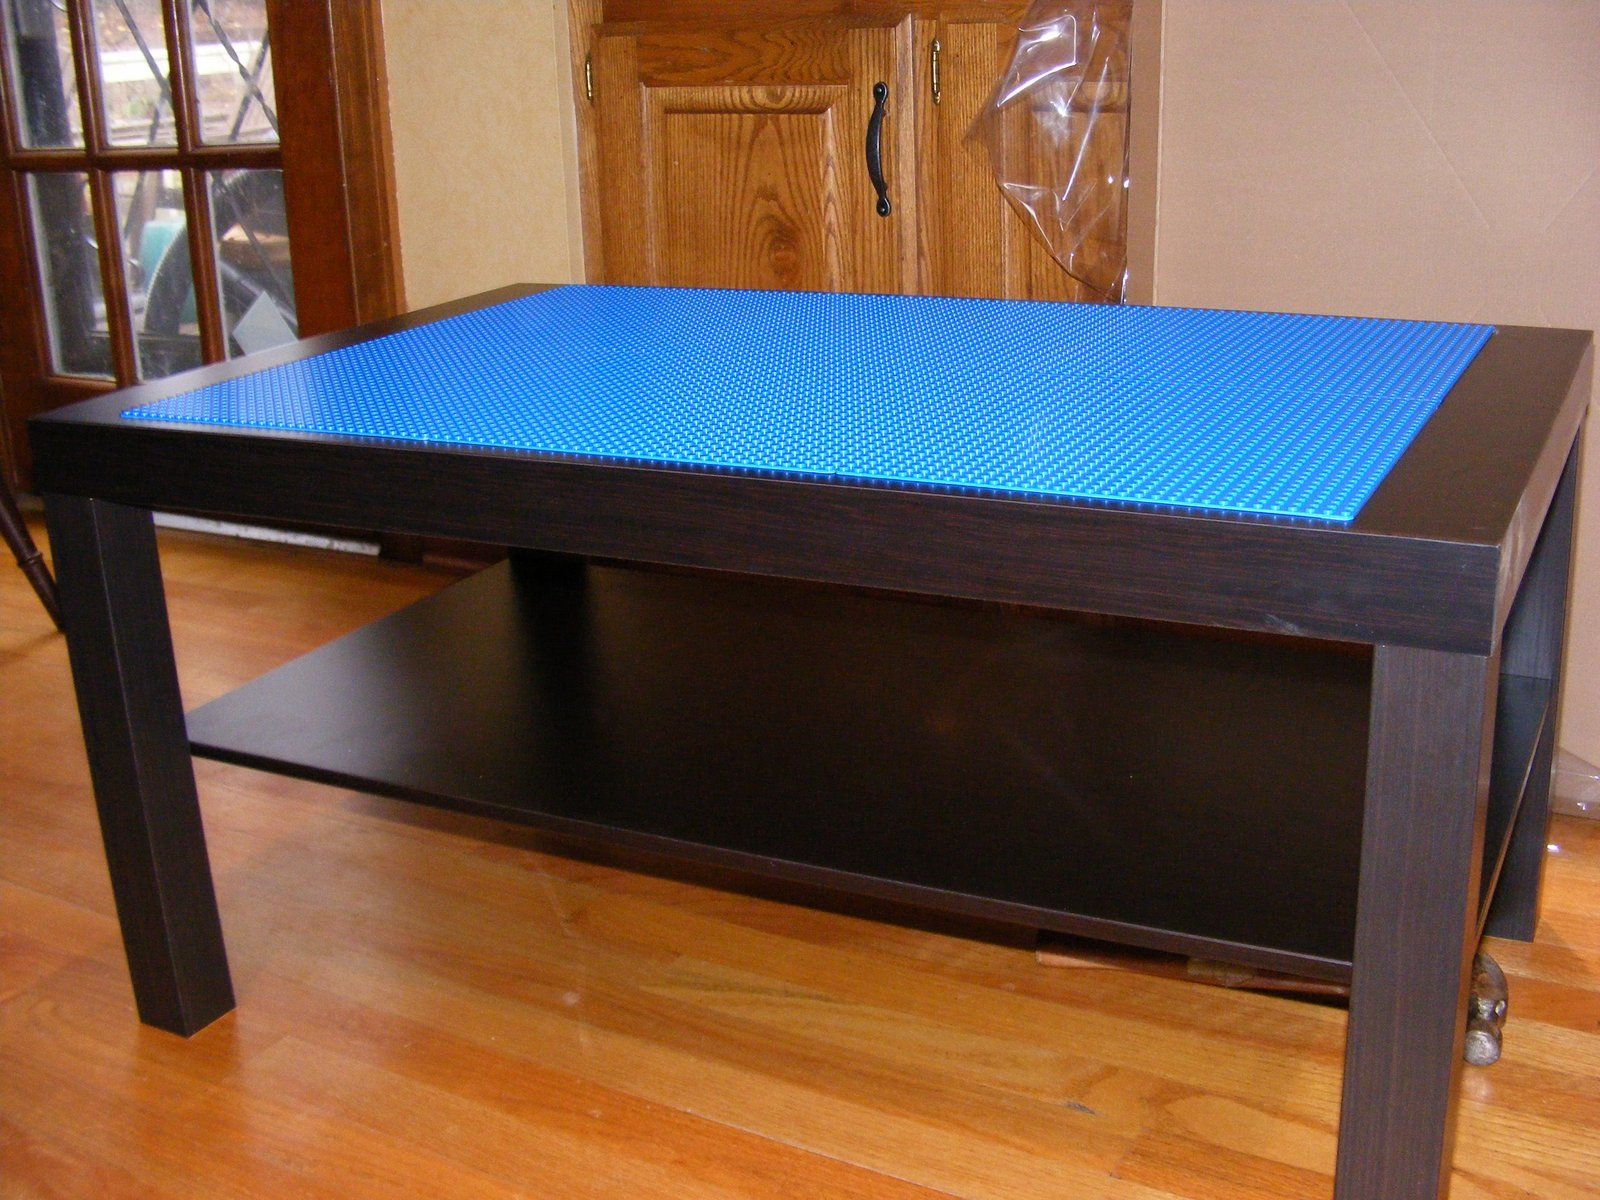 Diy Lego Table Ikea Hack Miss Information Lego Table Lego Table Ikea Lego Table Diy